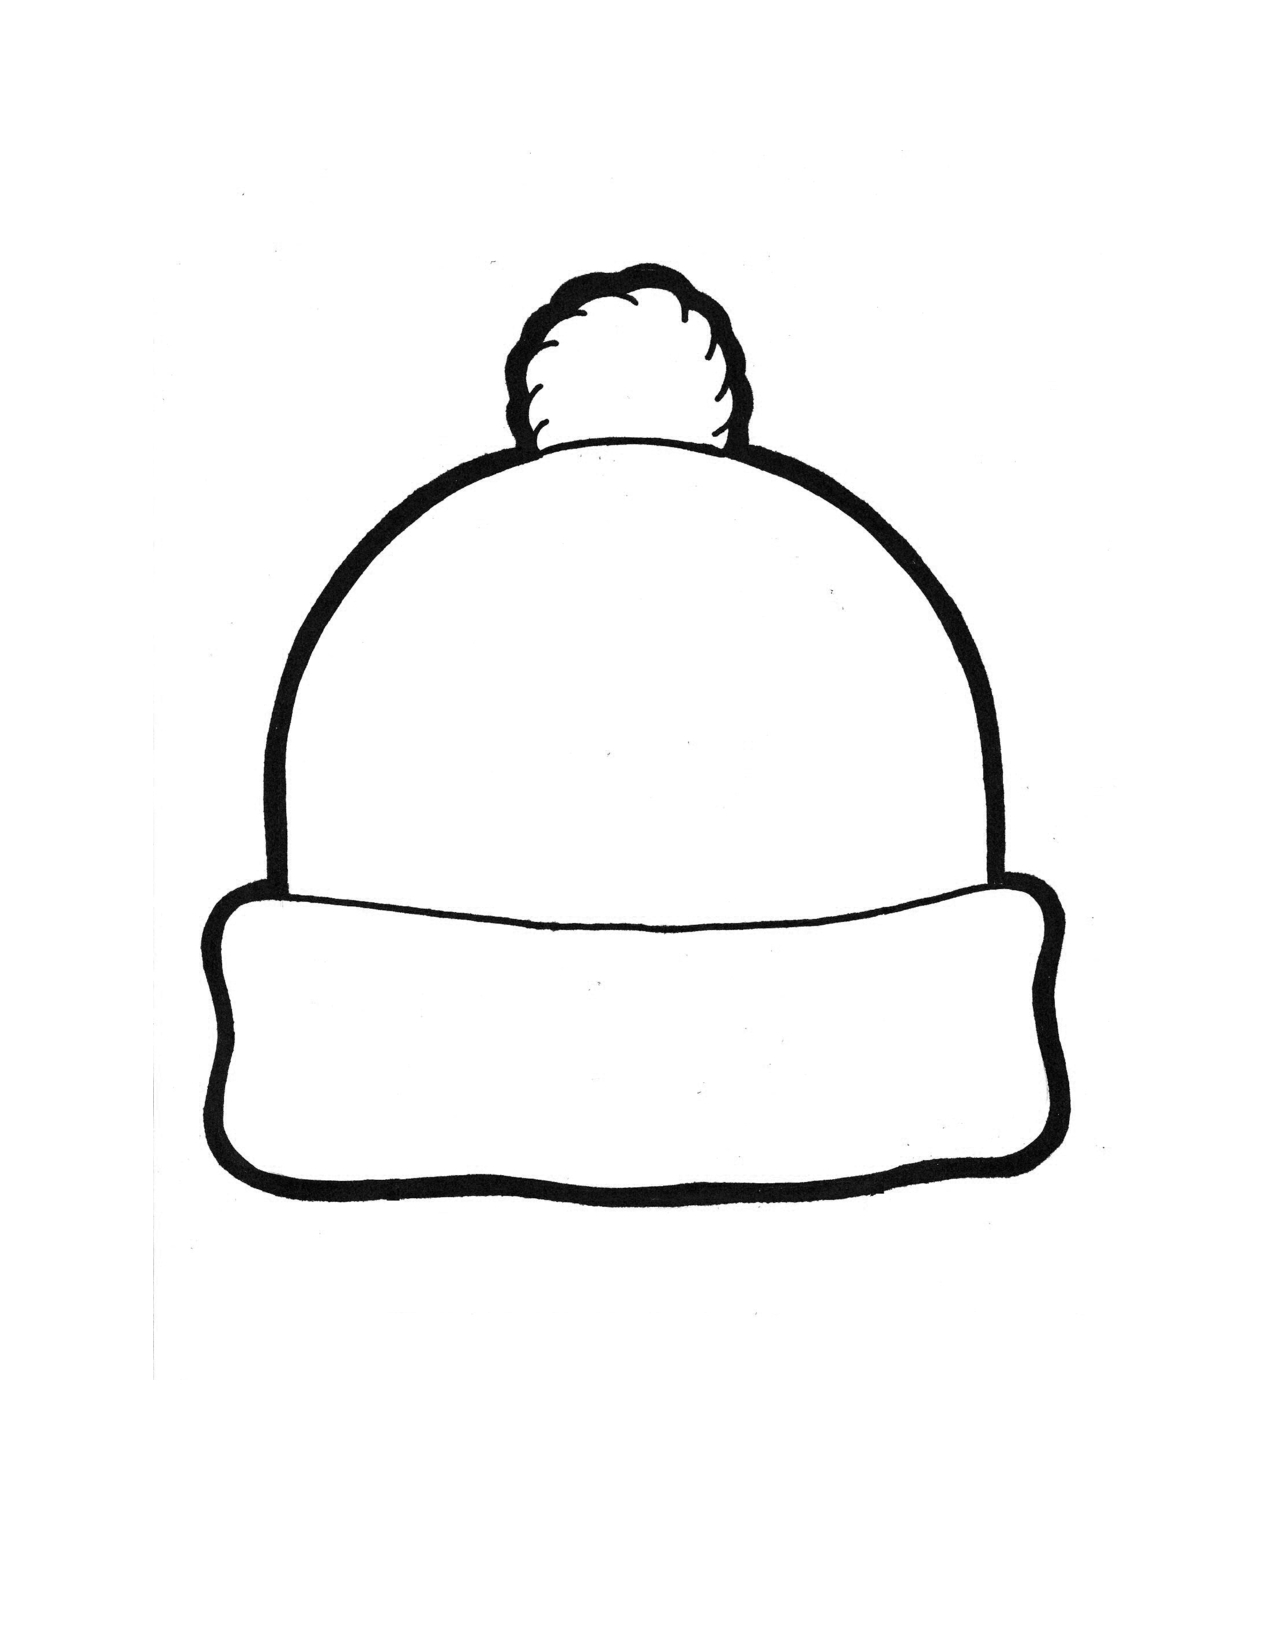 15 Snowman Hat Template Images - Printable Snowman Hat Pattern - Free Printable Snowman Hat Templates